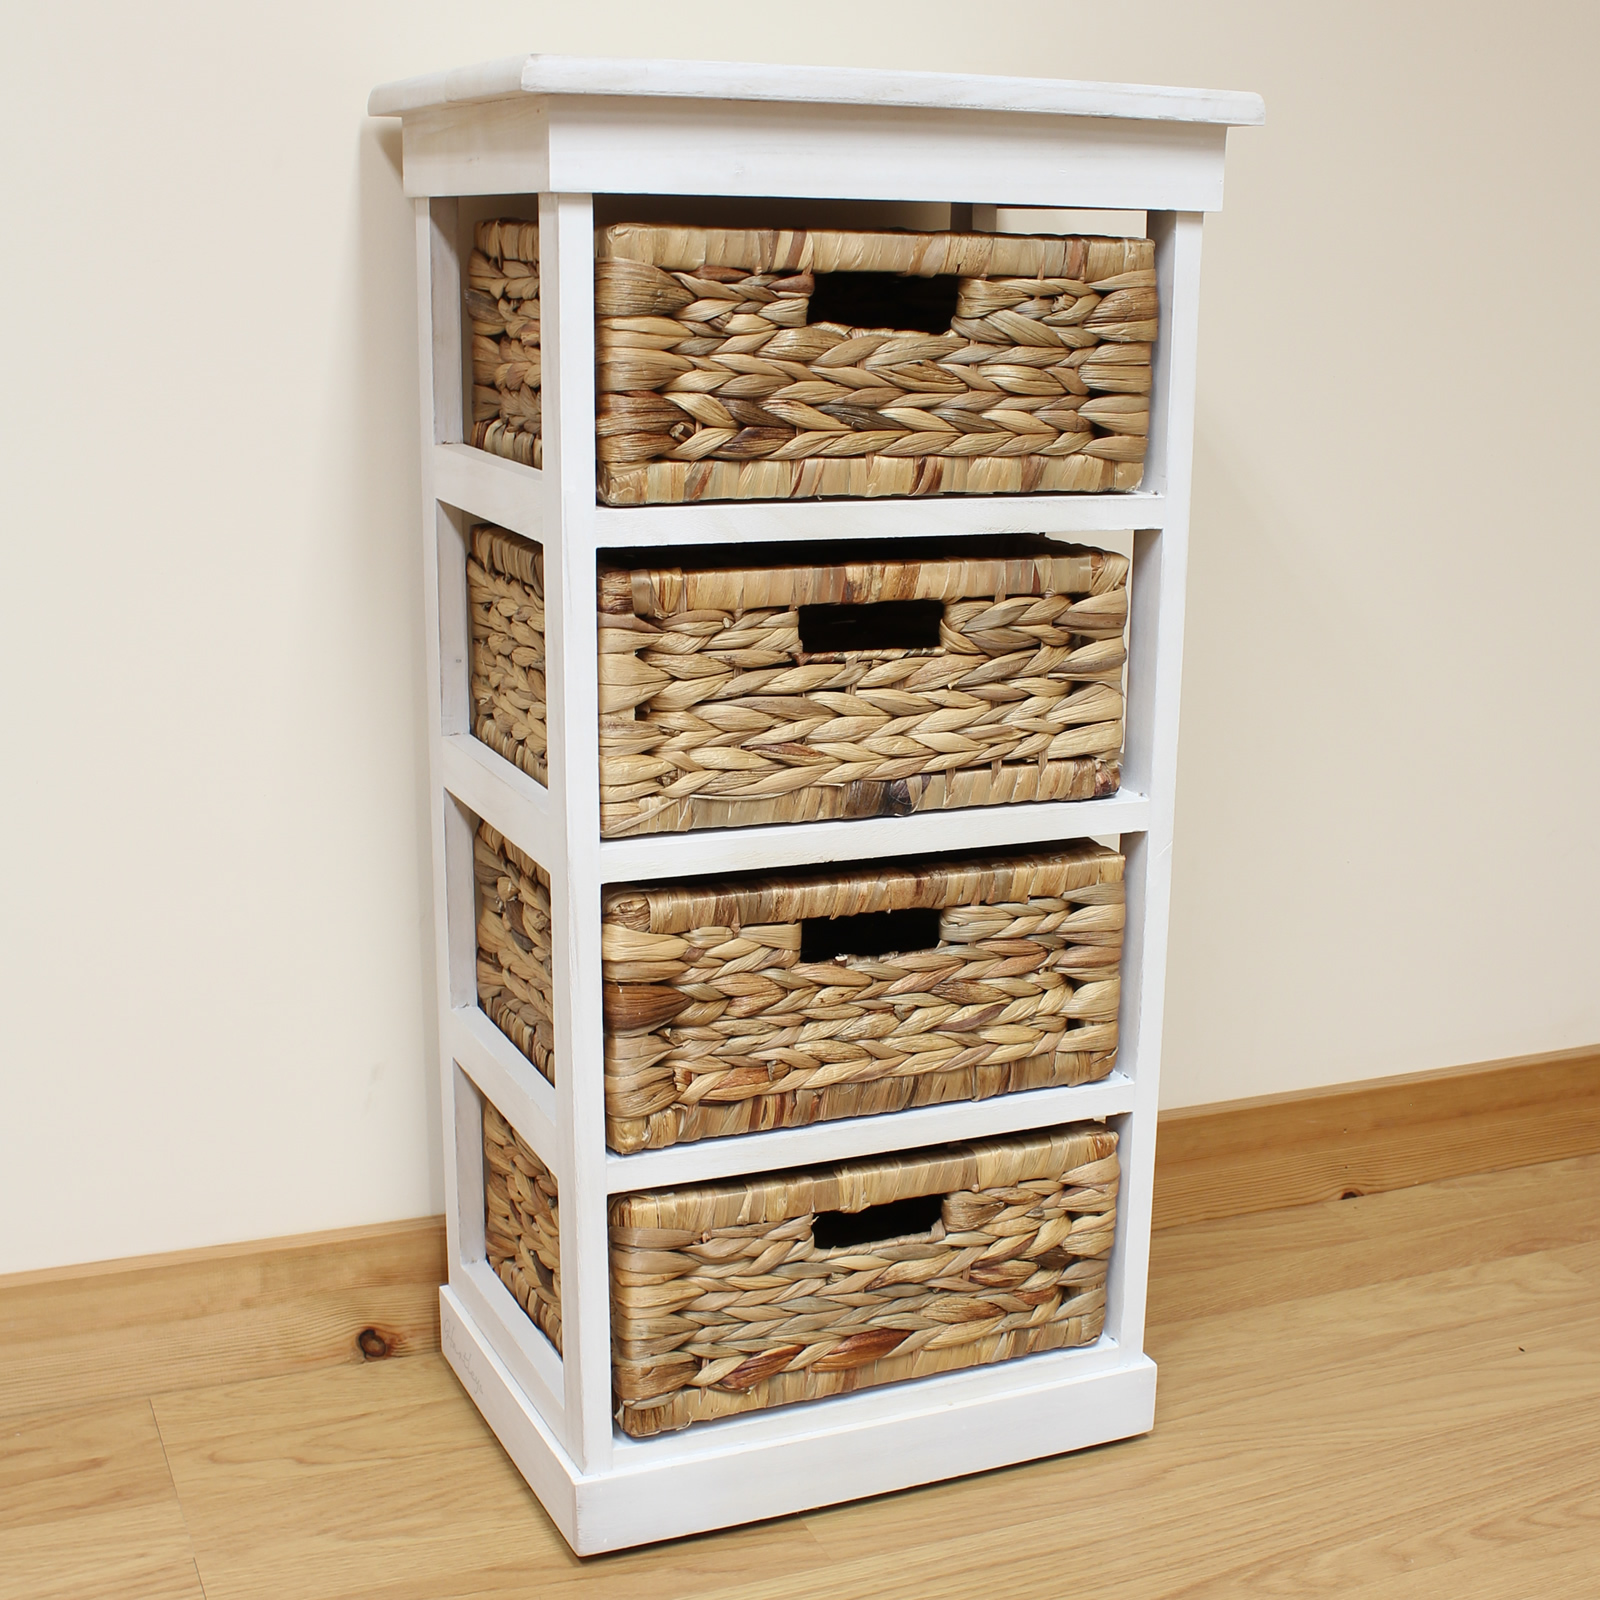 Bathroom Drawers Hartleys Large White 4 Basket Chest Home Storage Unit